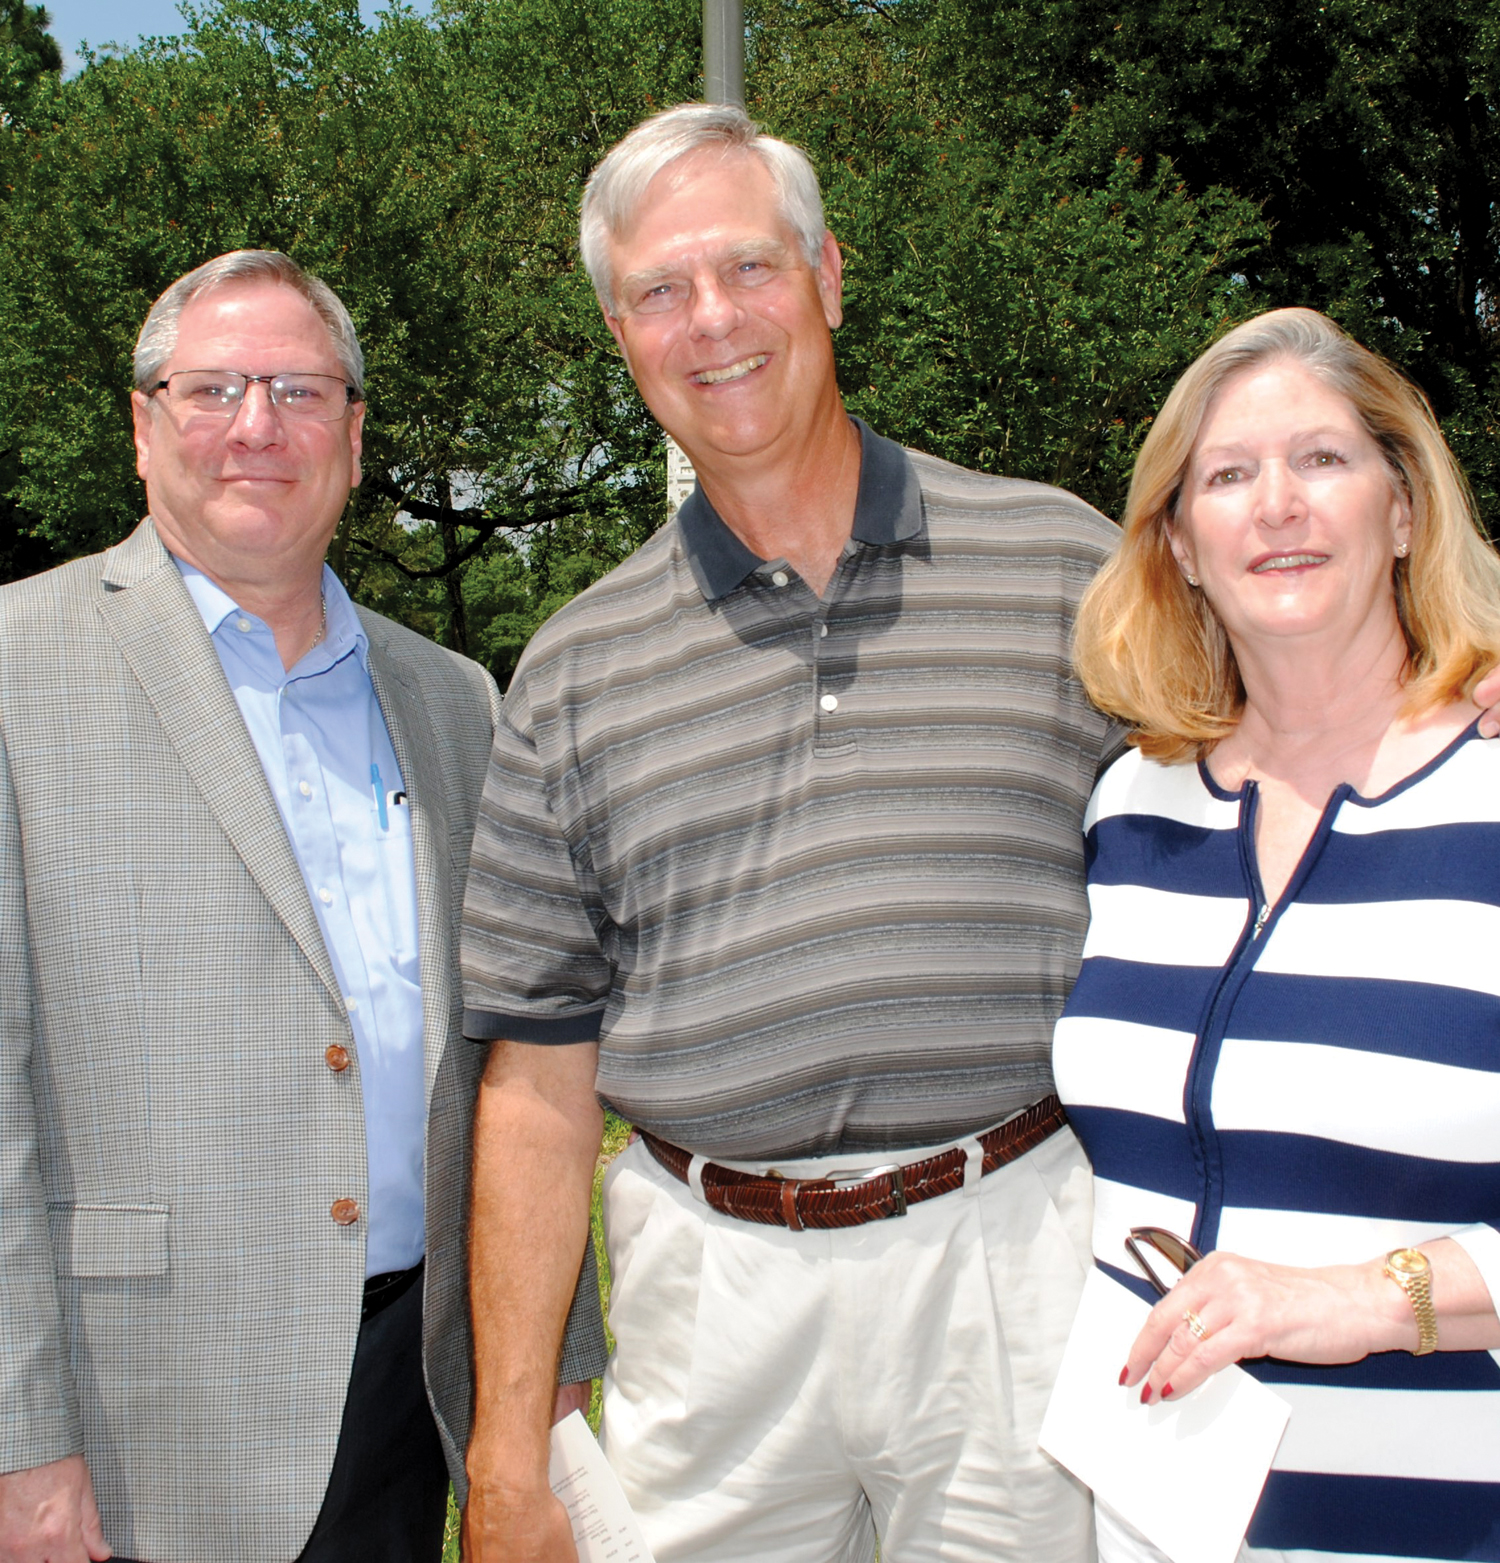 Former Seabrook Mayor Gary Renola and his wife, Elaine, right, and former UHCL Associate Vice President Dion McInnis were among the many at the Wilson park dedication. McInnis began plans for the park before retiring.